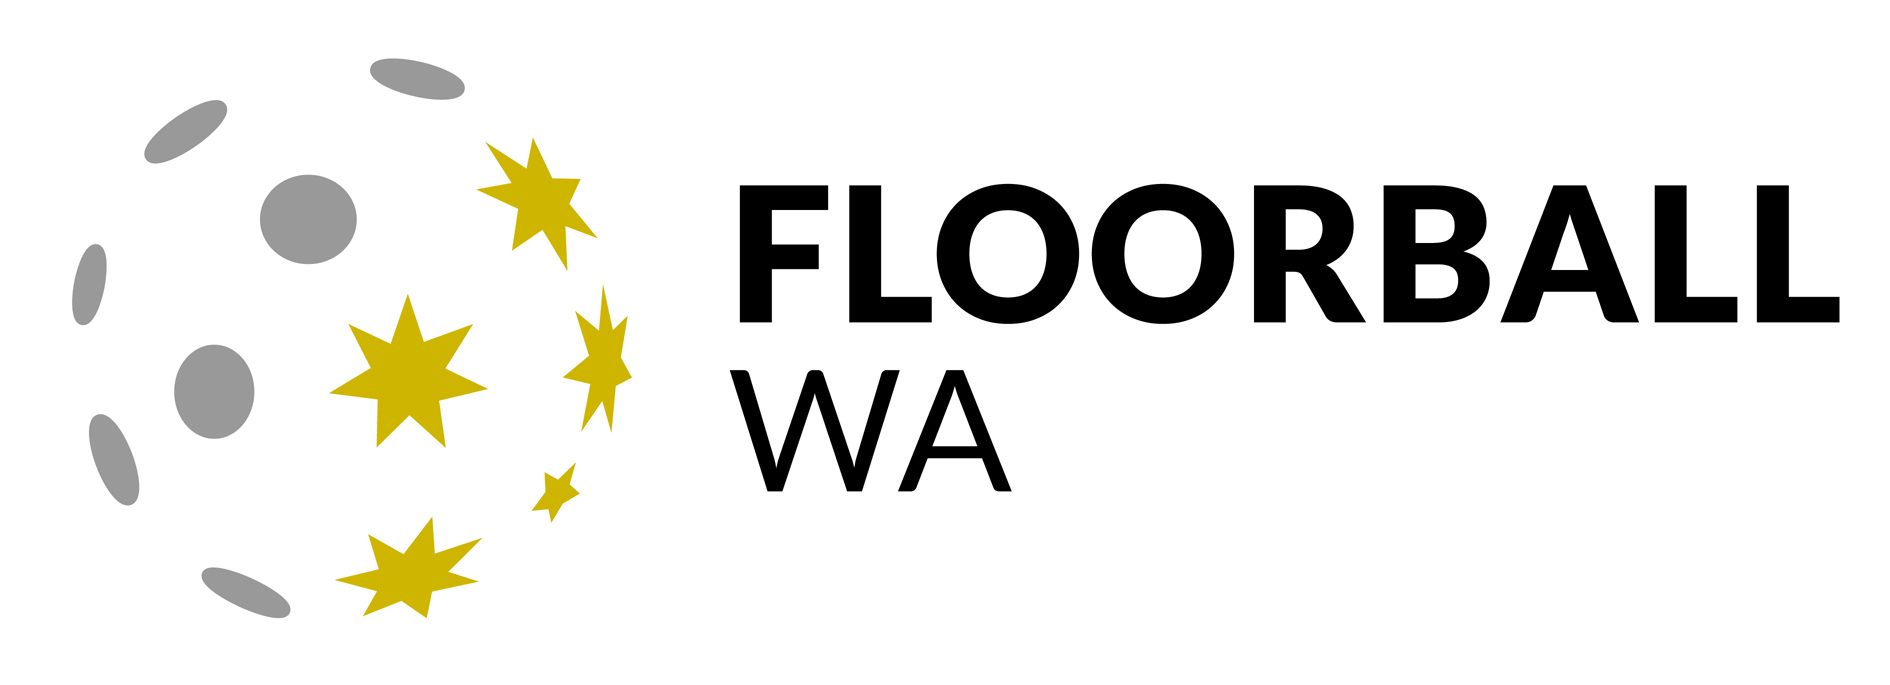 Floorball WA